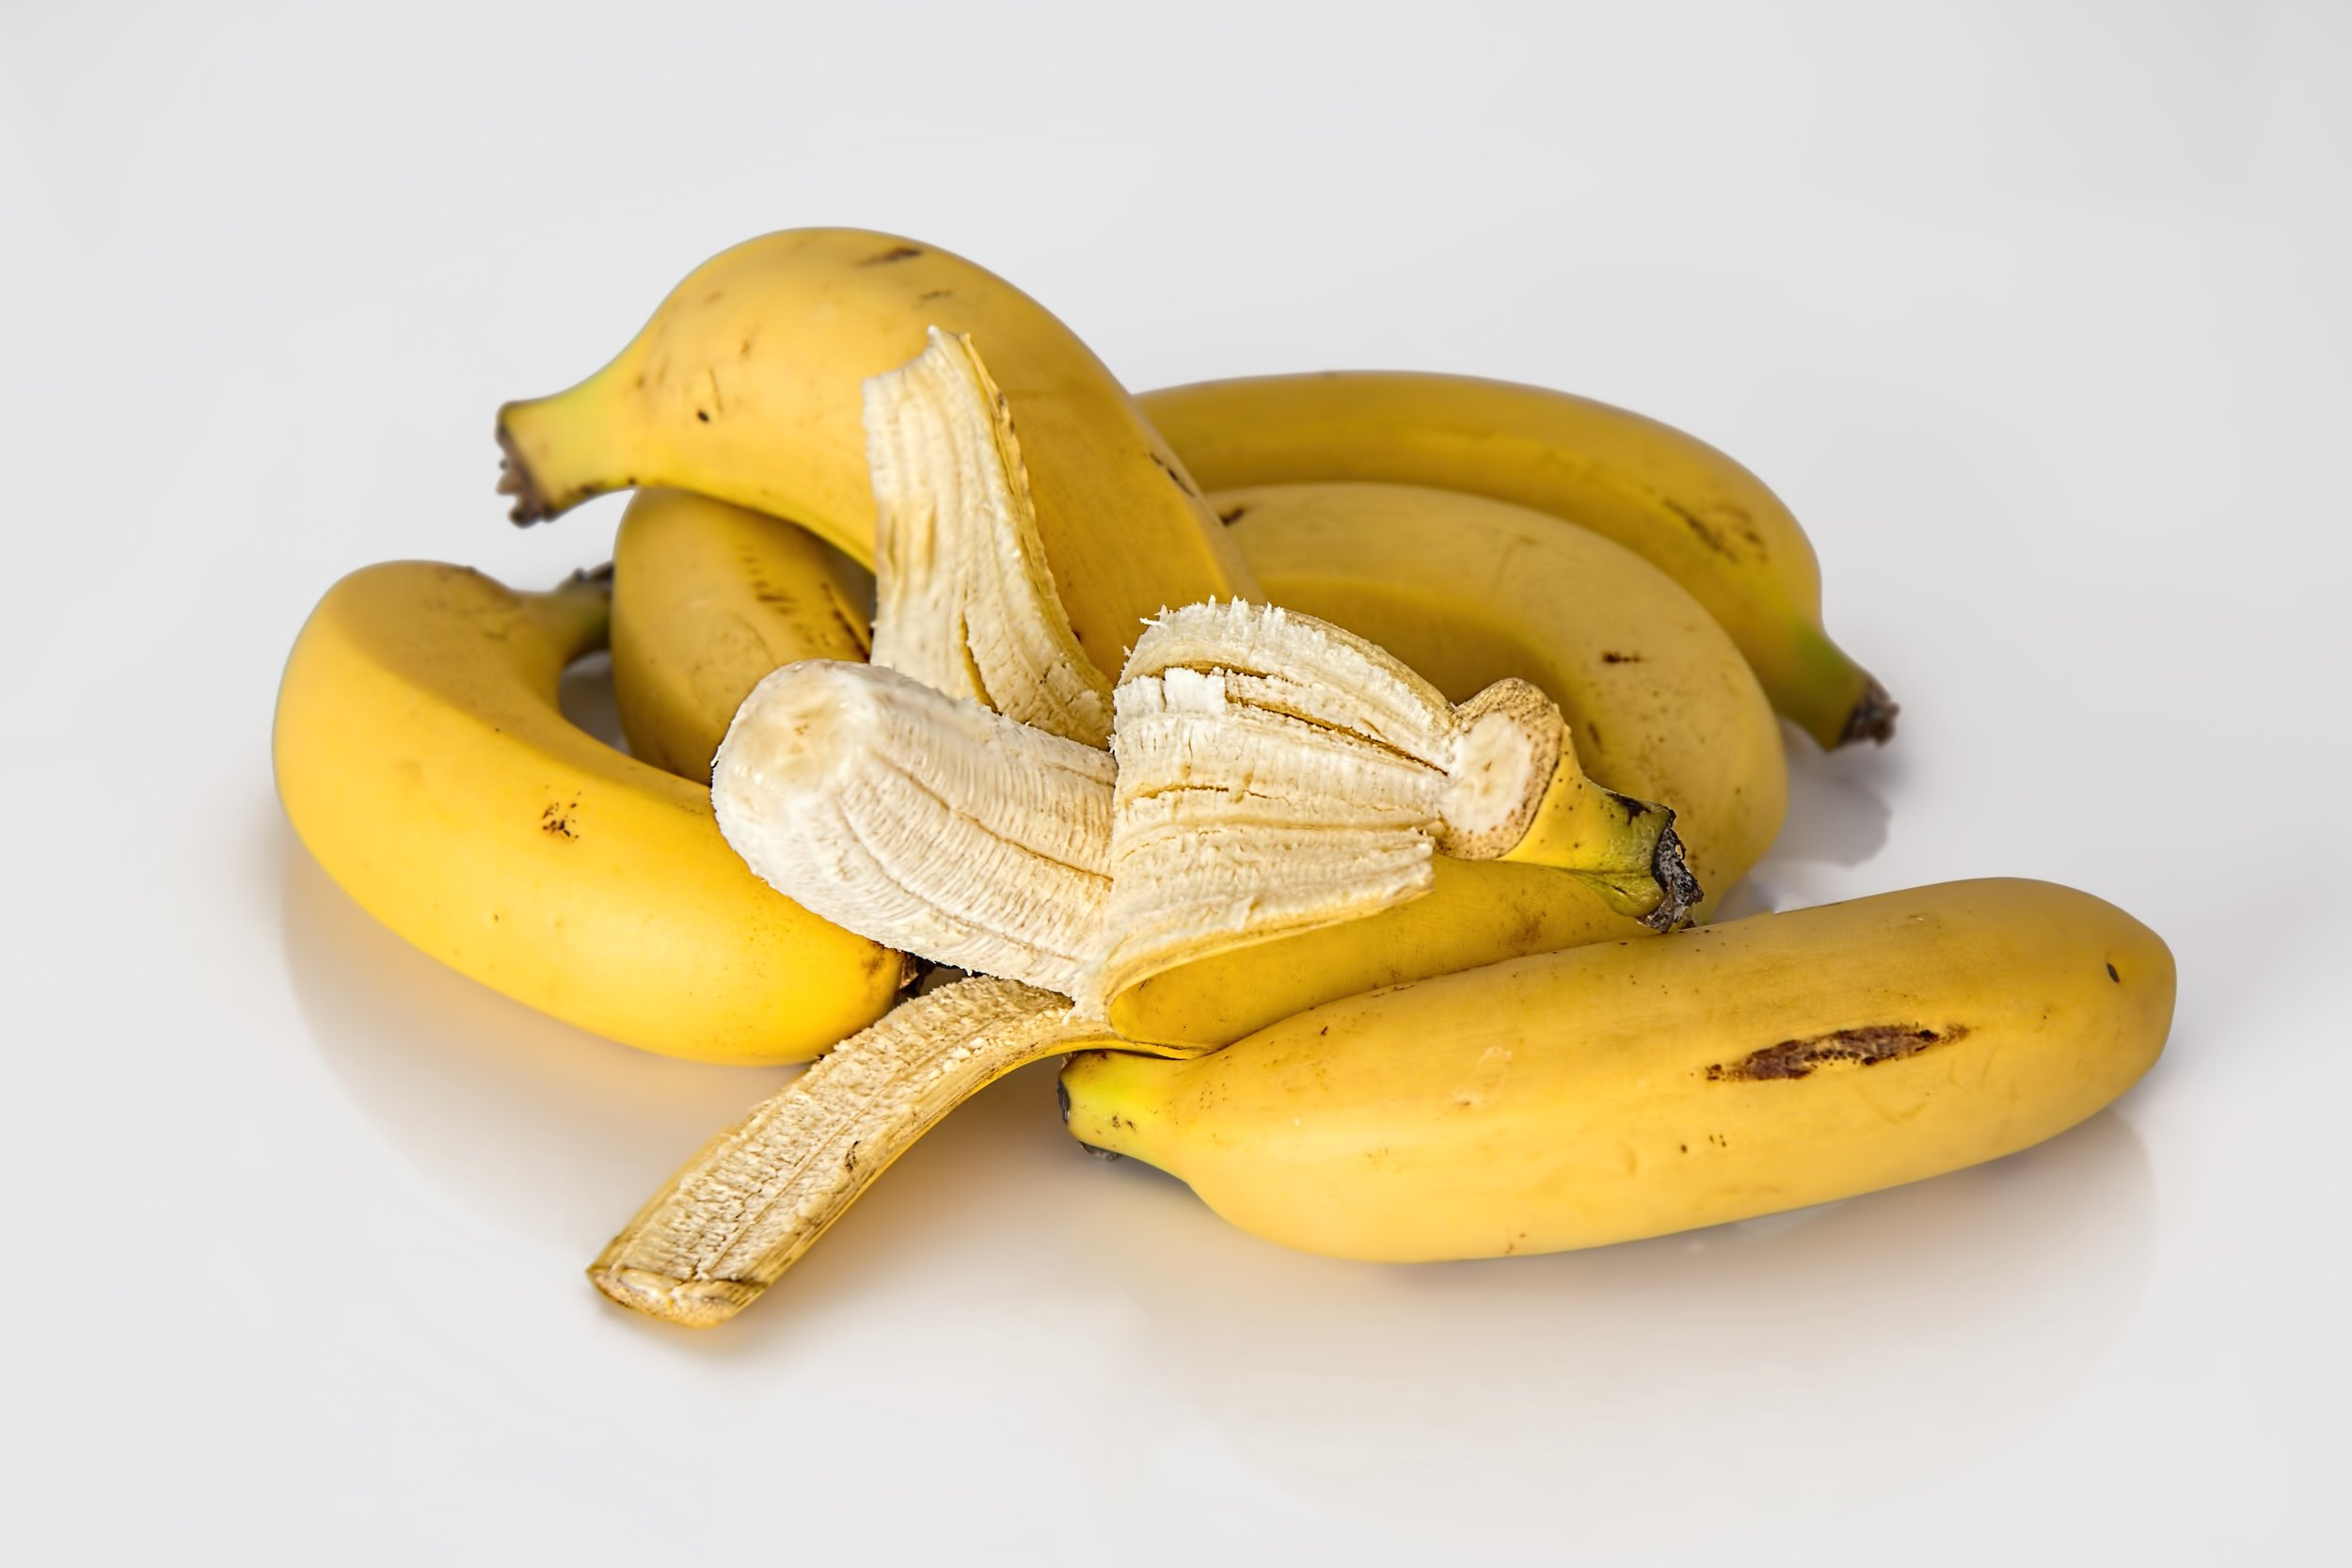 bananas-diet-dietary-fibre-39566.jpg